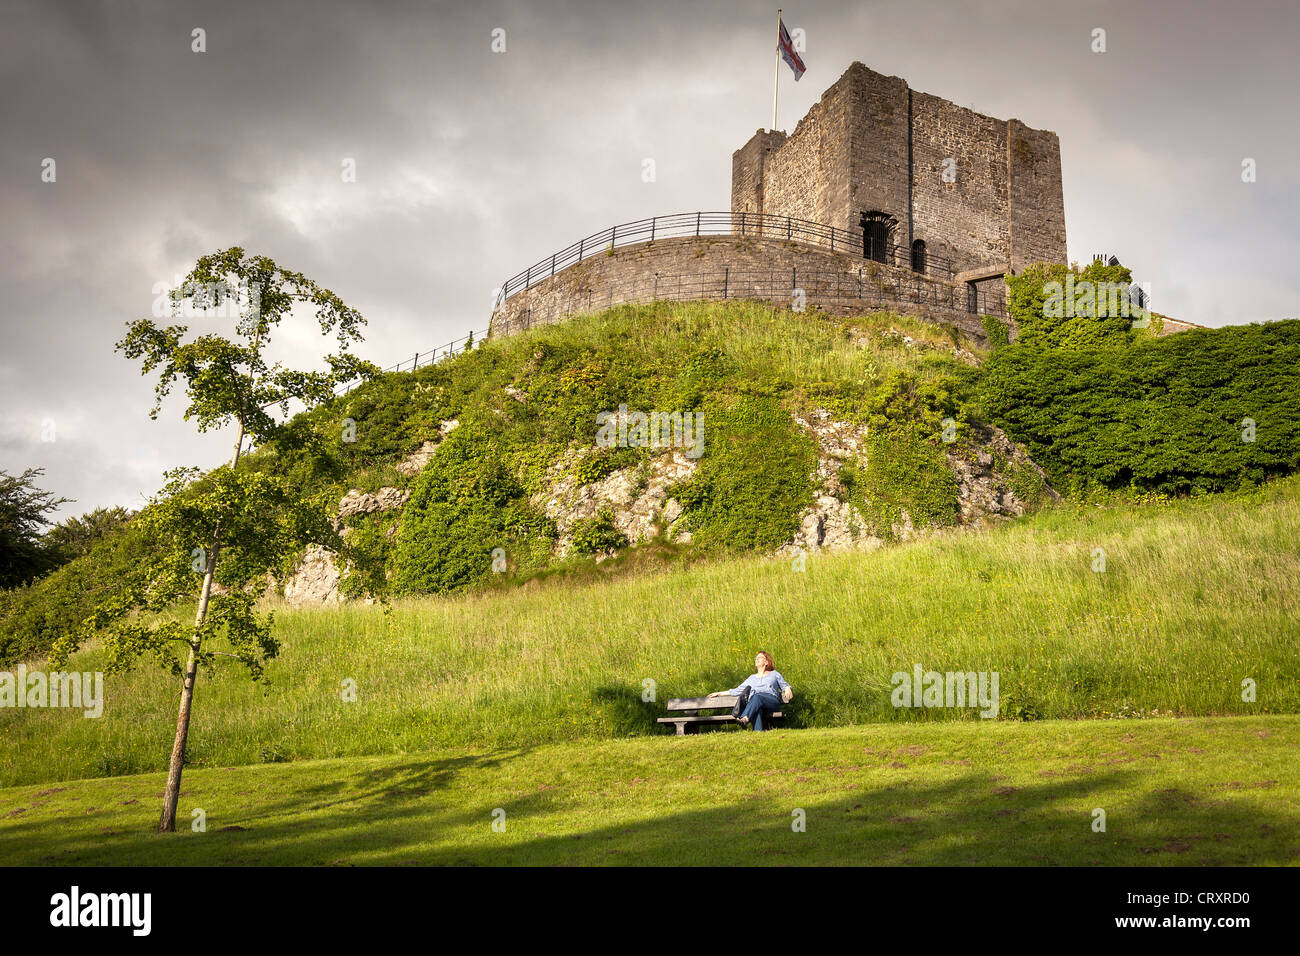 Clitheroe castle Lancahire. - Stock Image